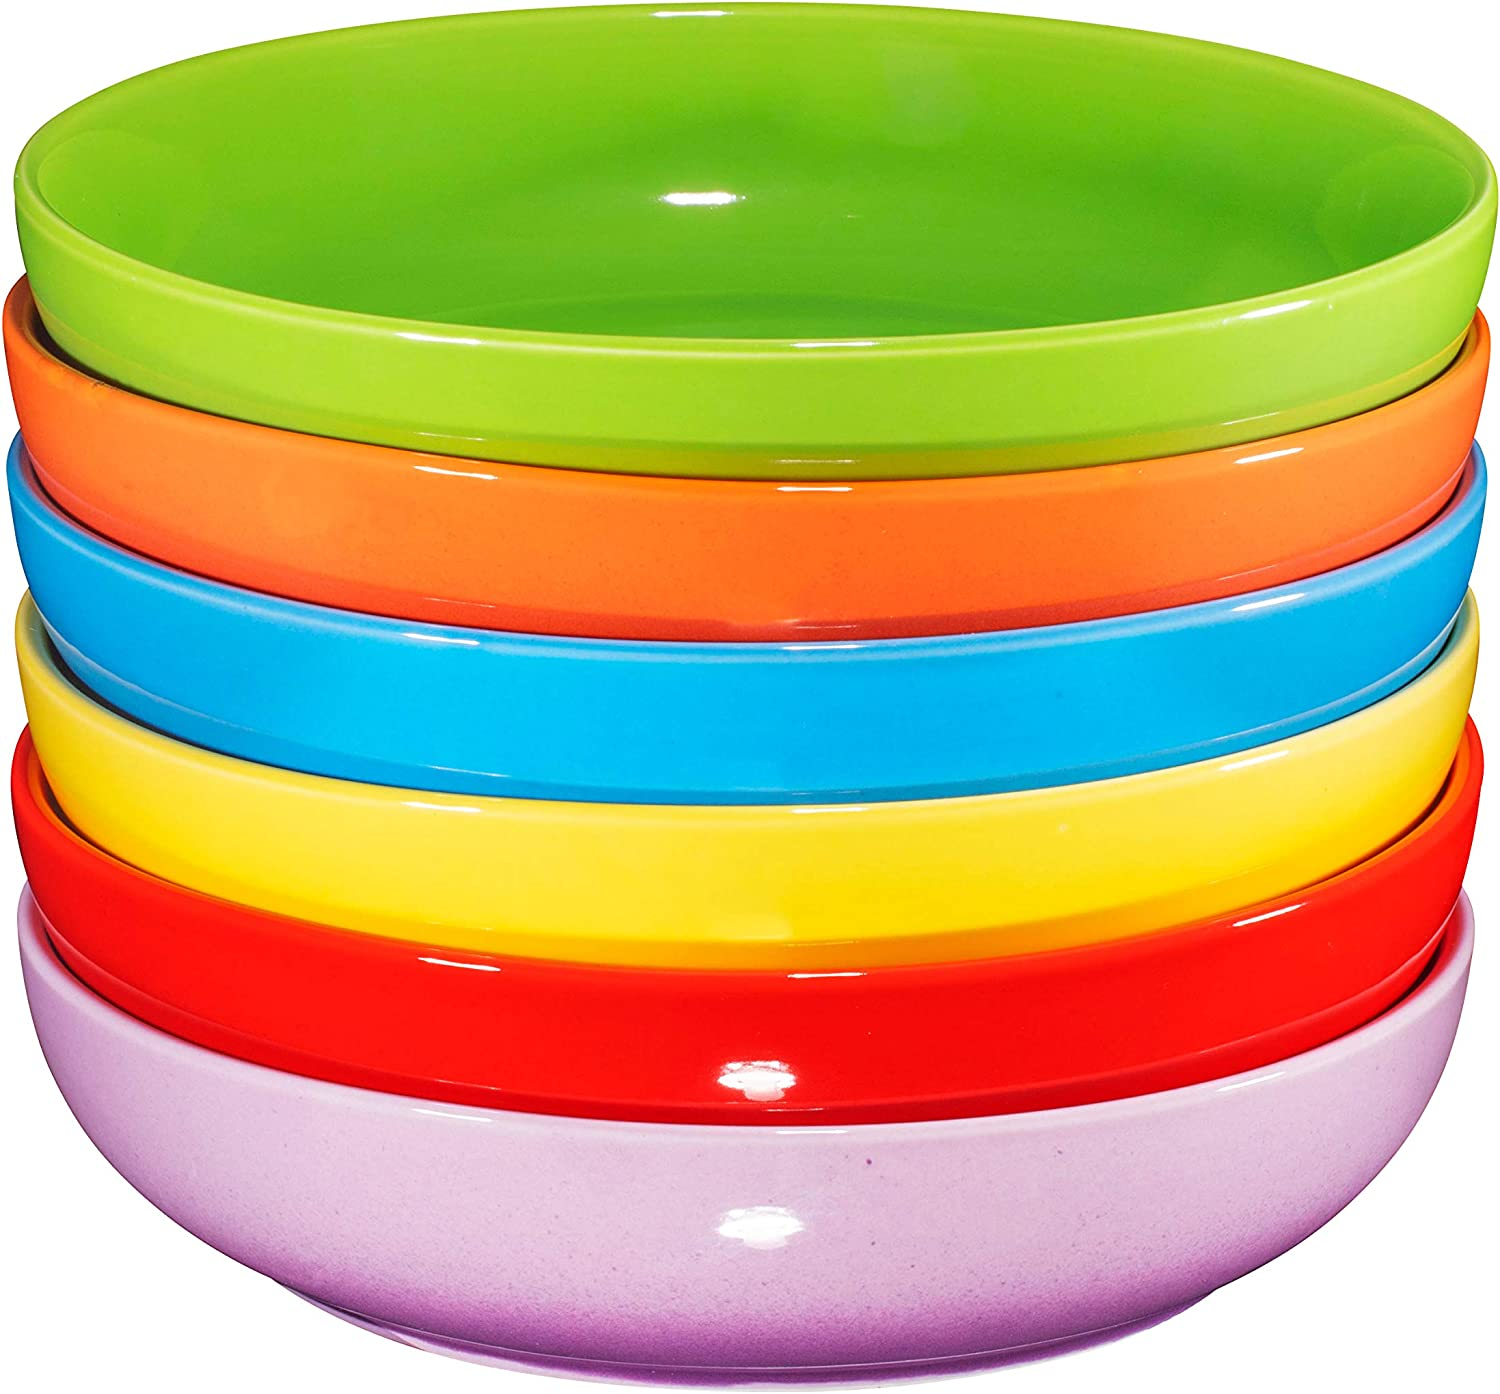 Bruntmor Ceramic Salad, Cereal And Pasta Bowls Set Of 6, Shallow Dinner Bowls That Are Oven, Microwave Oven And Dishwasher Safe, Chip And Scratch Resistant (Multi-Color, 24 oz Each)